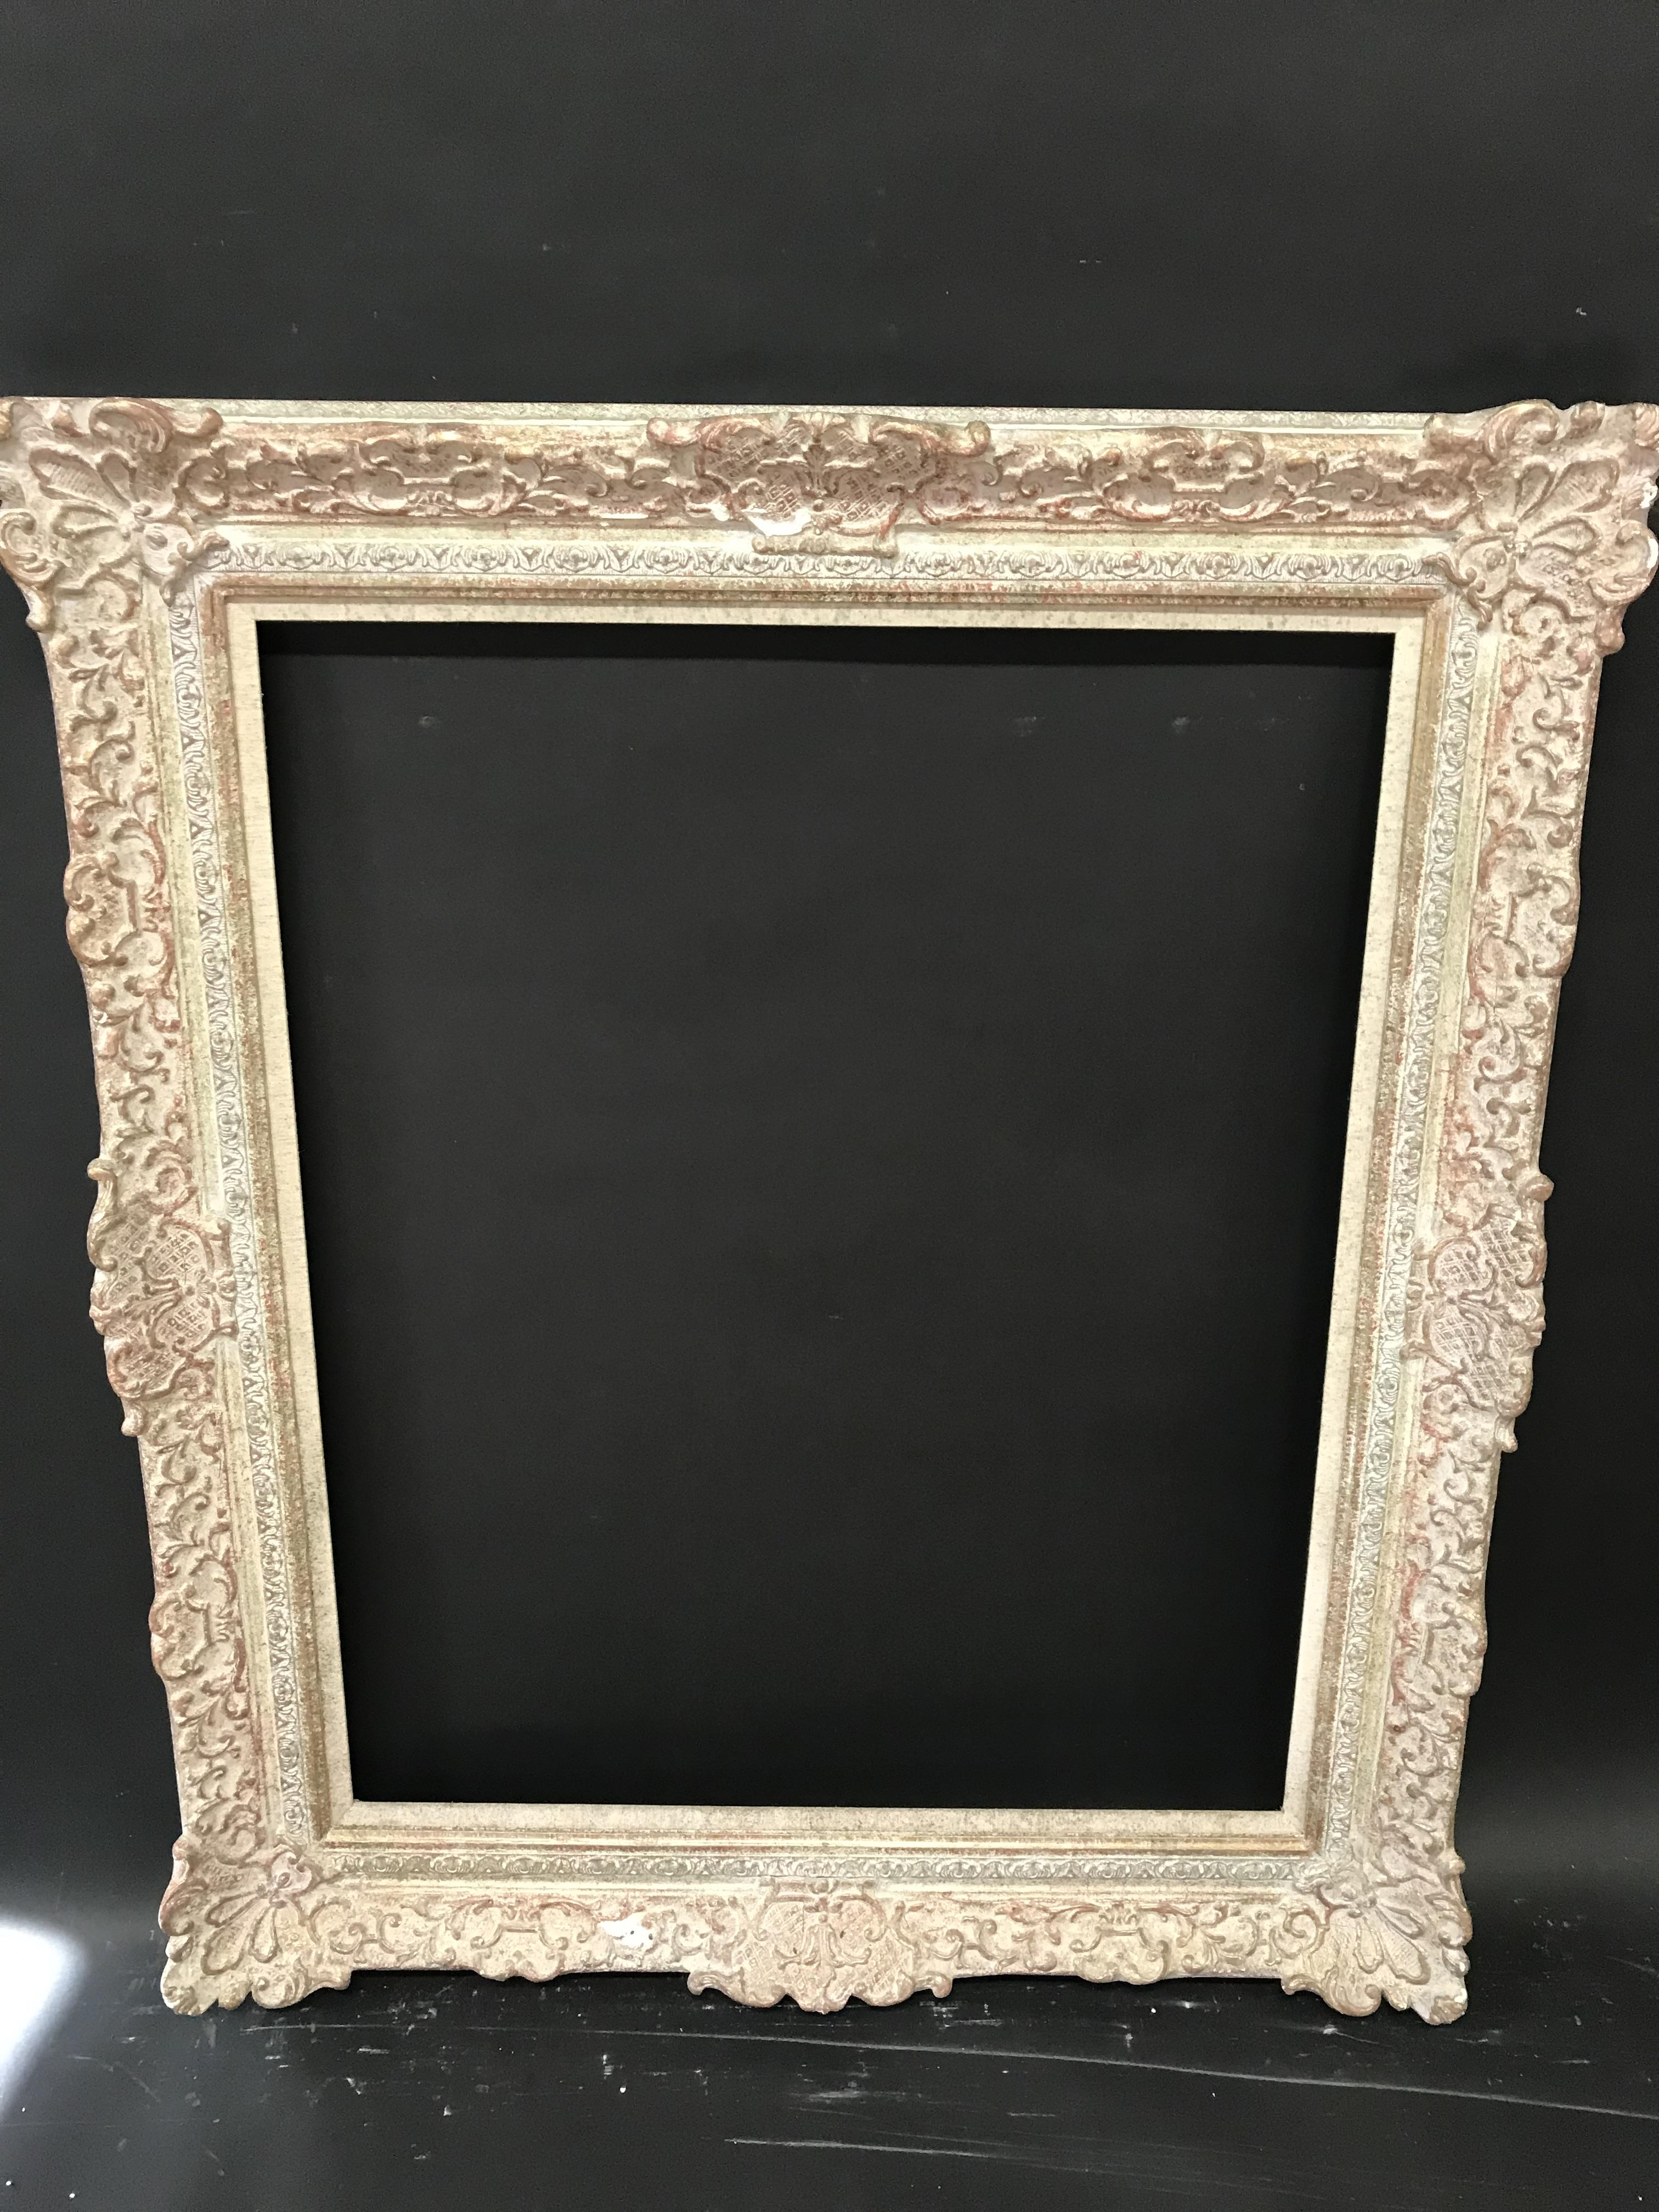 Lot 44 - 20th Century English School. A Painted Composition Frame, with Swept Centres and Corners, and a